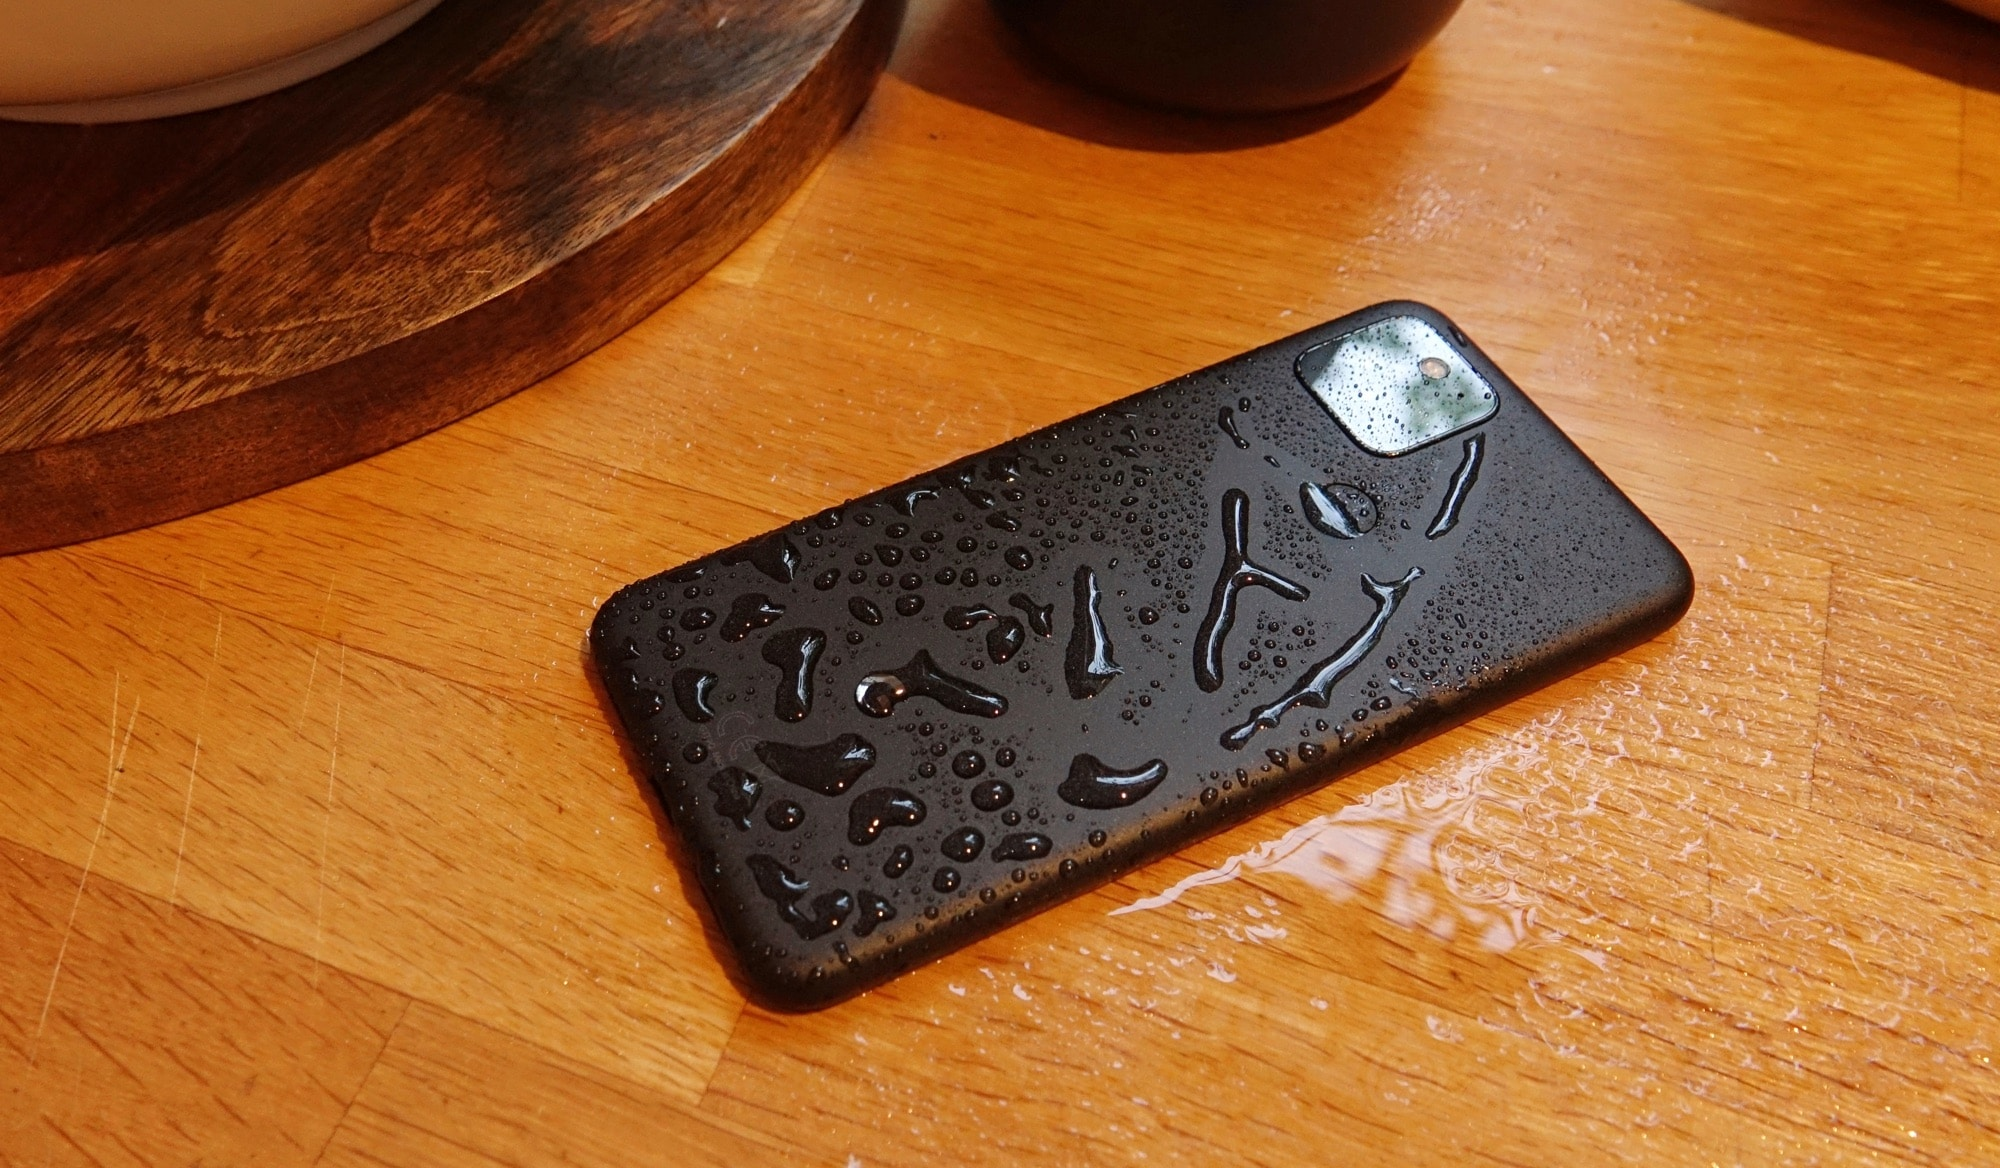 The Google Pixel 5 is water resistant